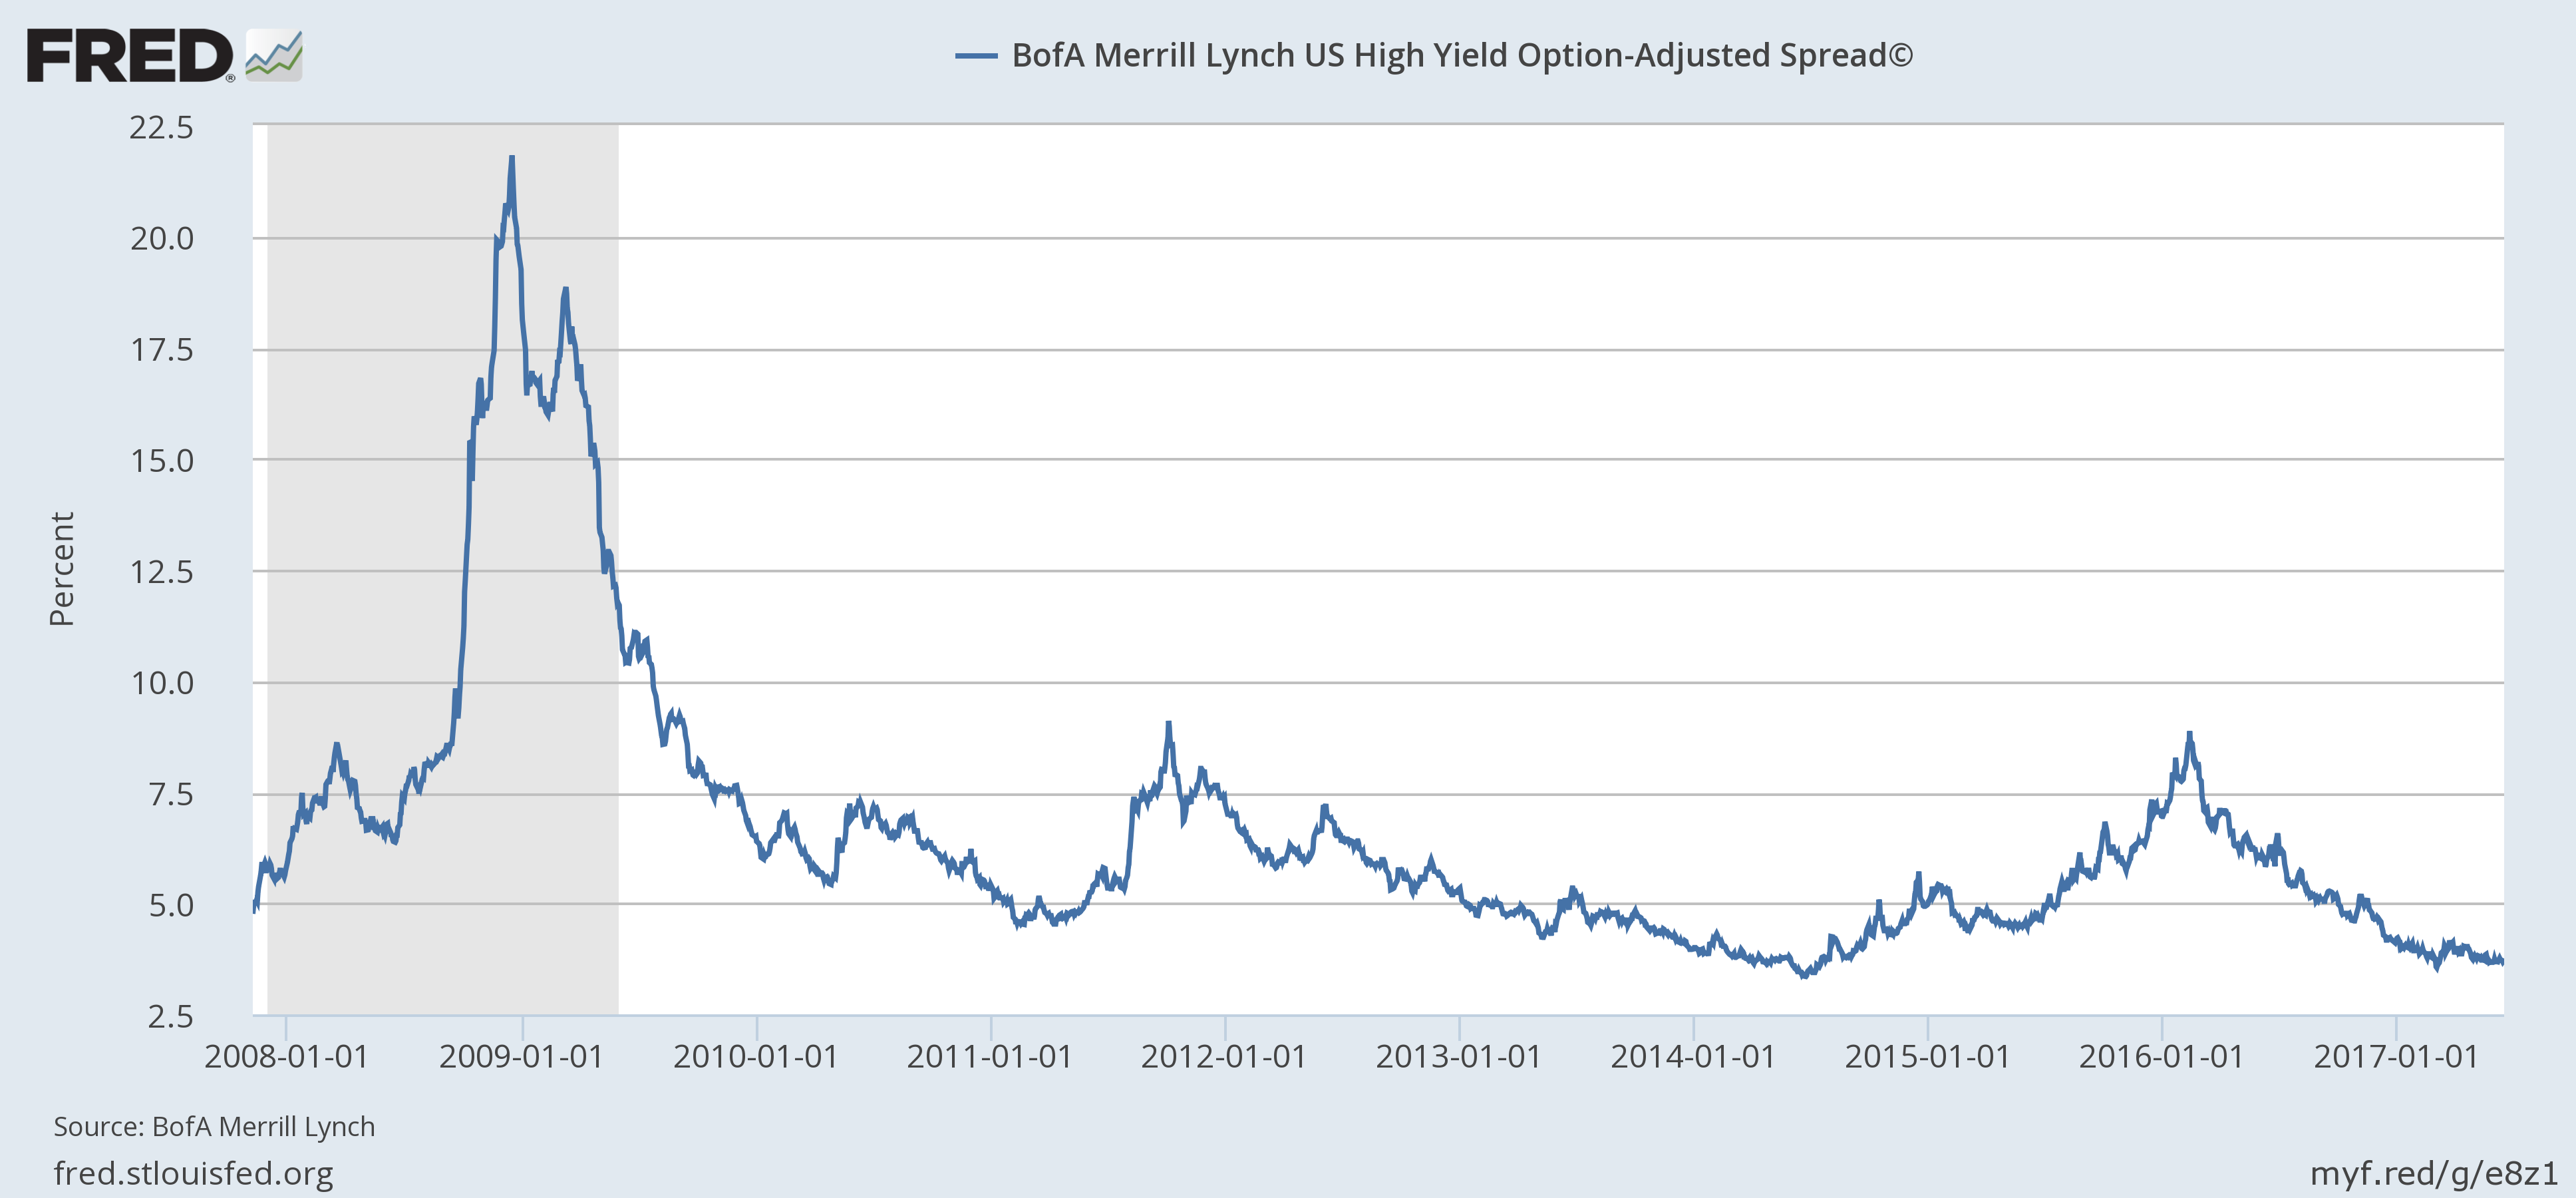 US High Yield Option-Adjusted Spread, January 2008 - June 2017